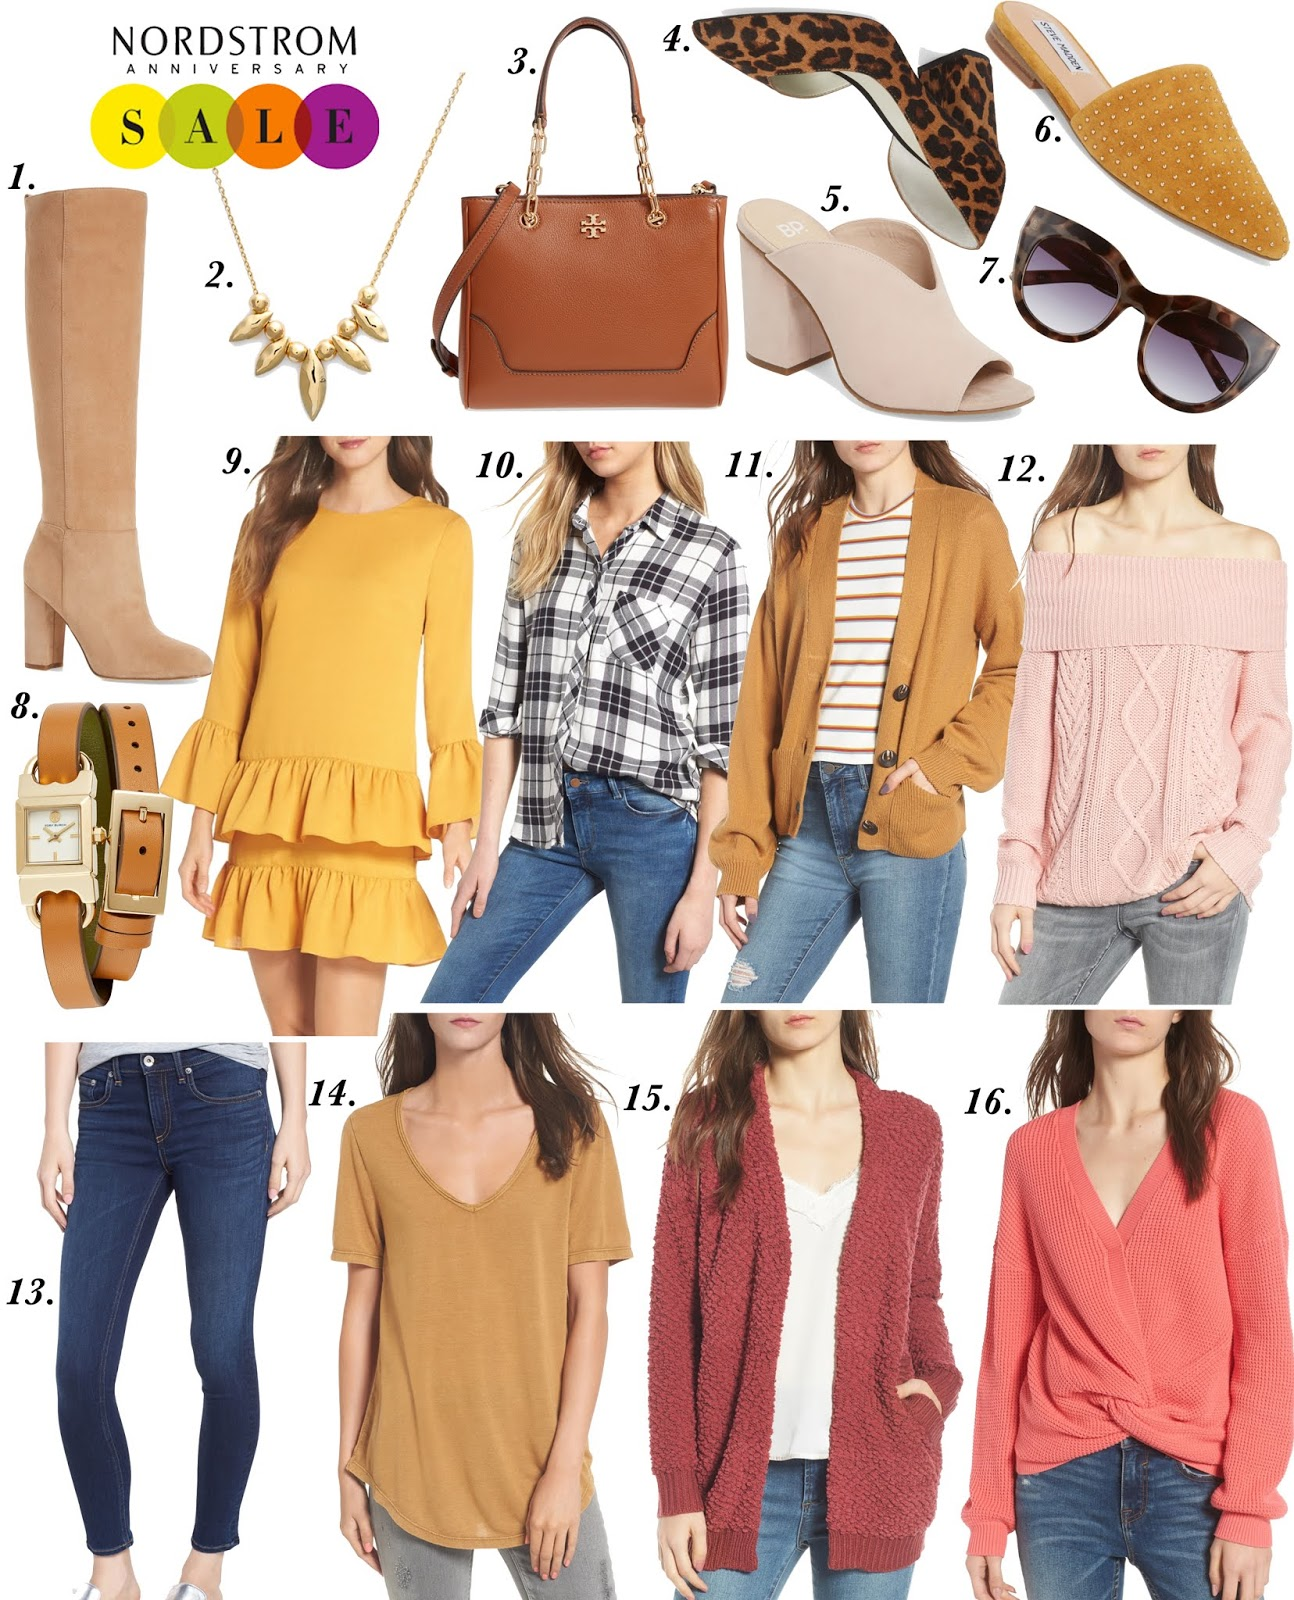 2018 Nordstrom Anniversary Sale: My Purchases - Something Delightful Blog